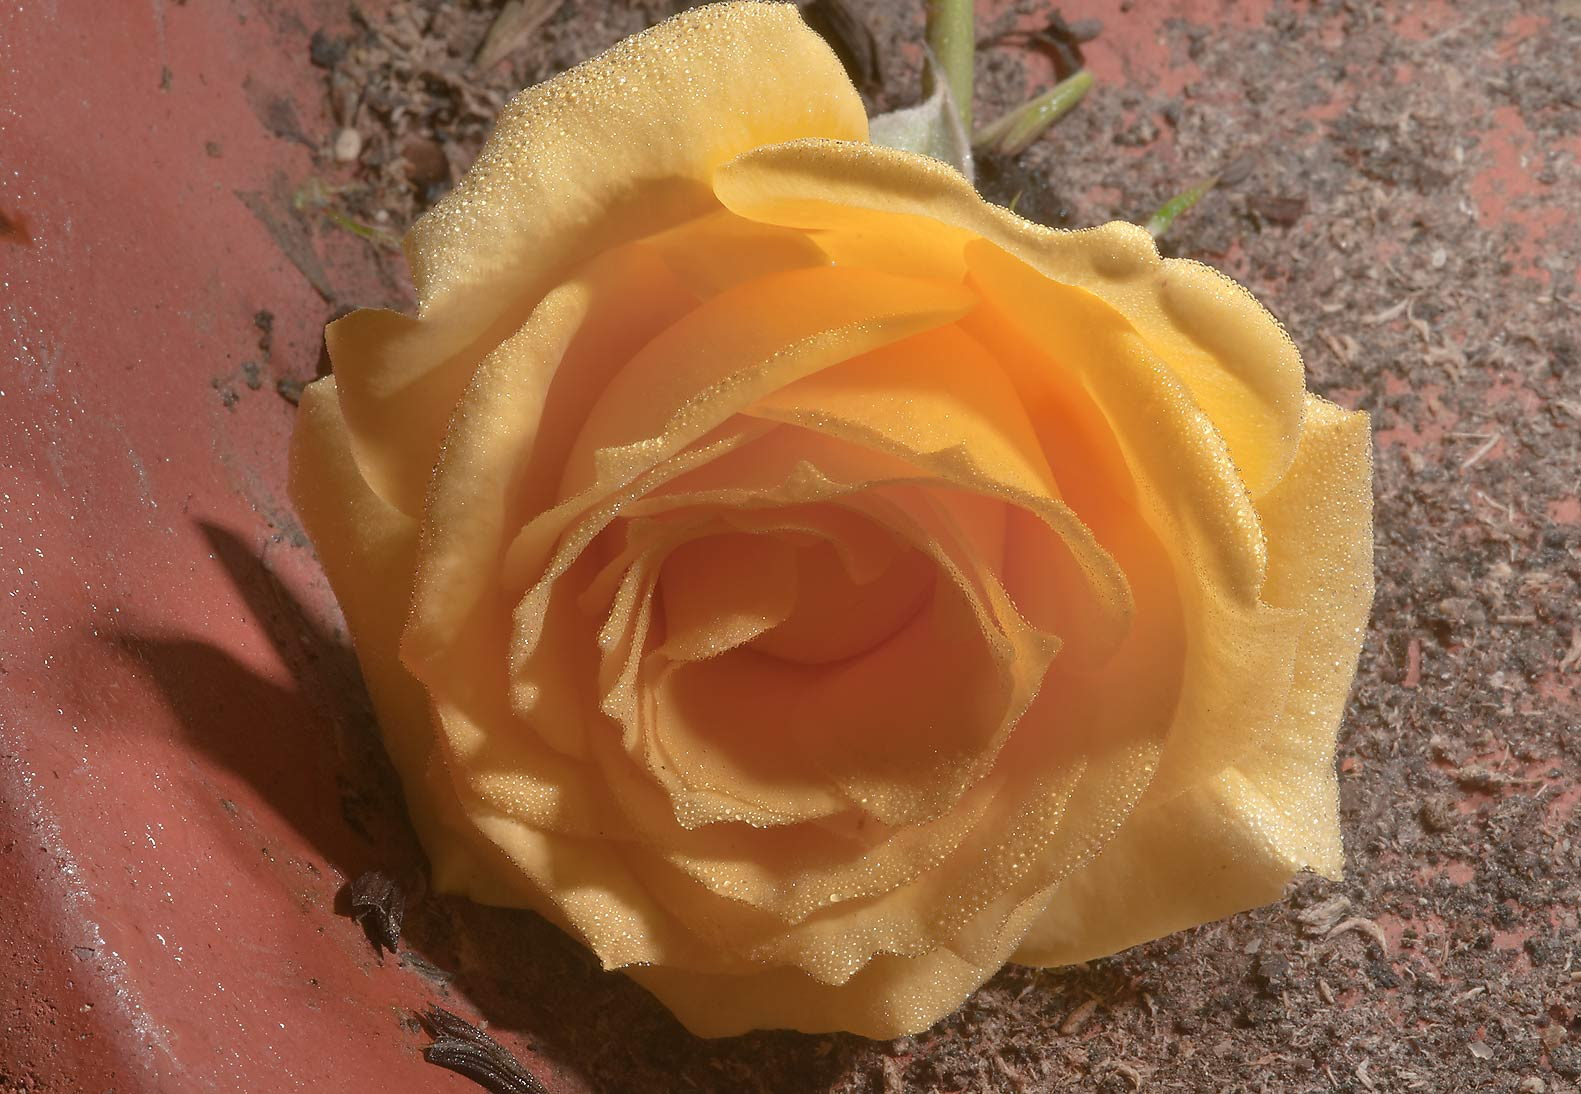 Yellow rose in TAMU Holistic Garden in Texas A&M University. College Station, Texas